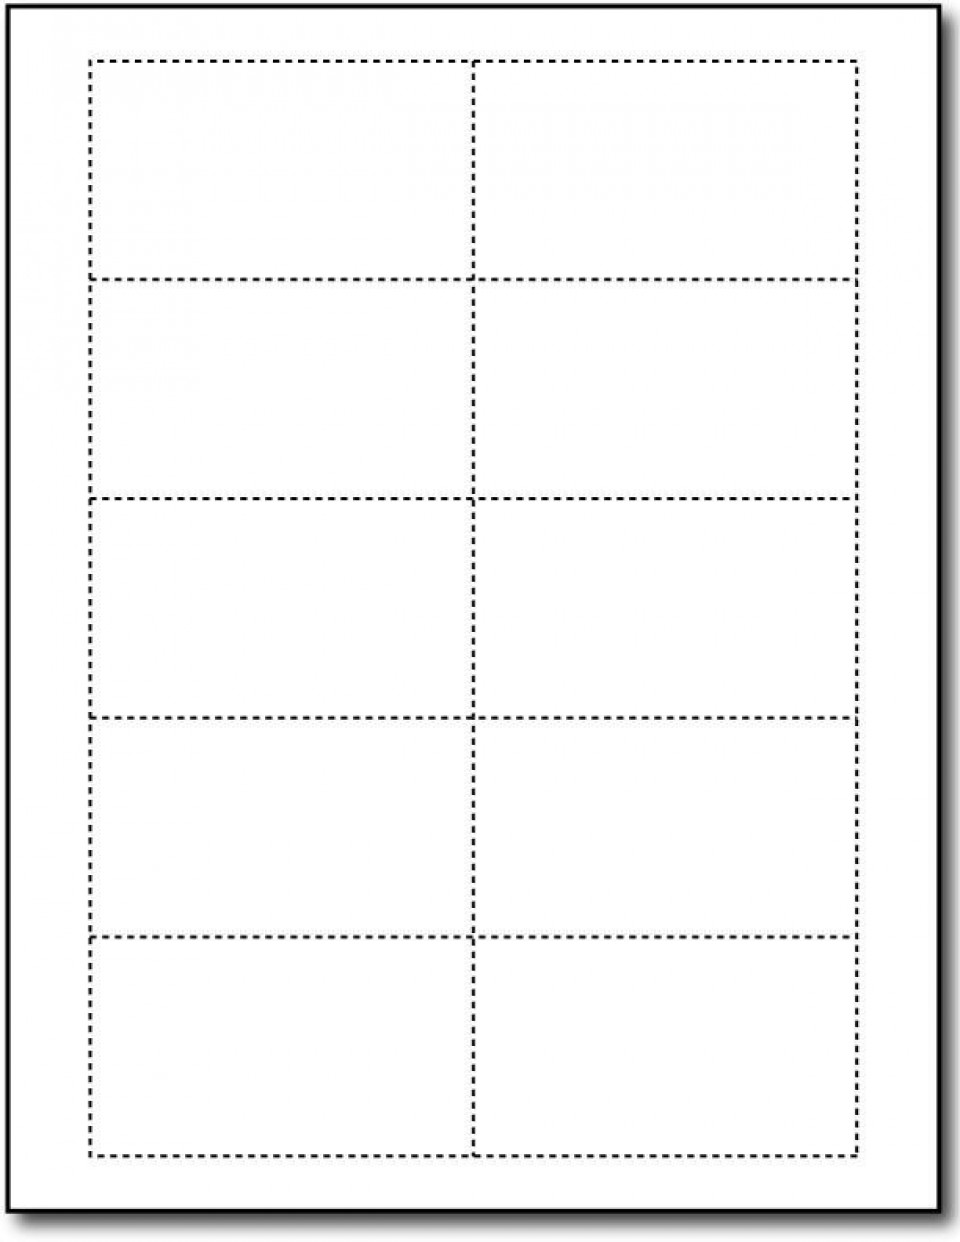 Word Busines Card Template Free Simple Download  Microsoft 2007 Double Sided Blank960